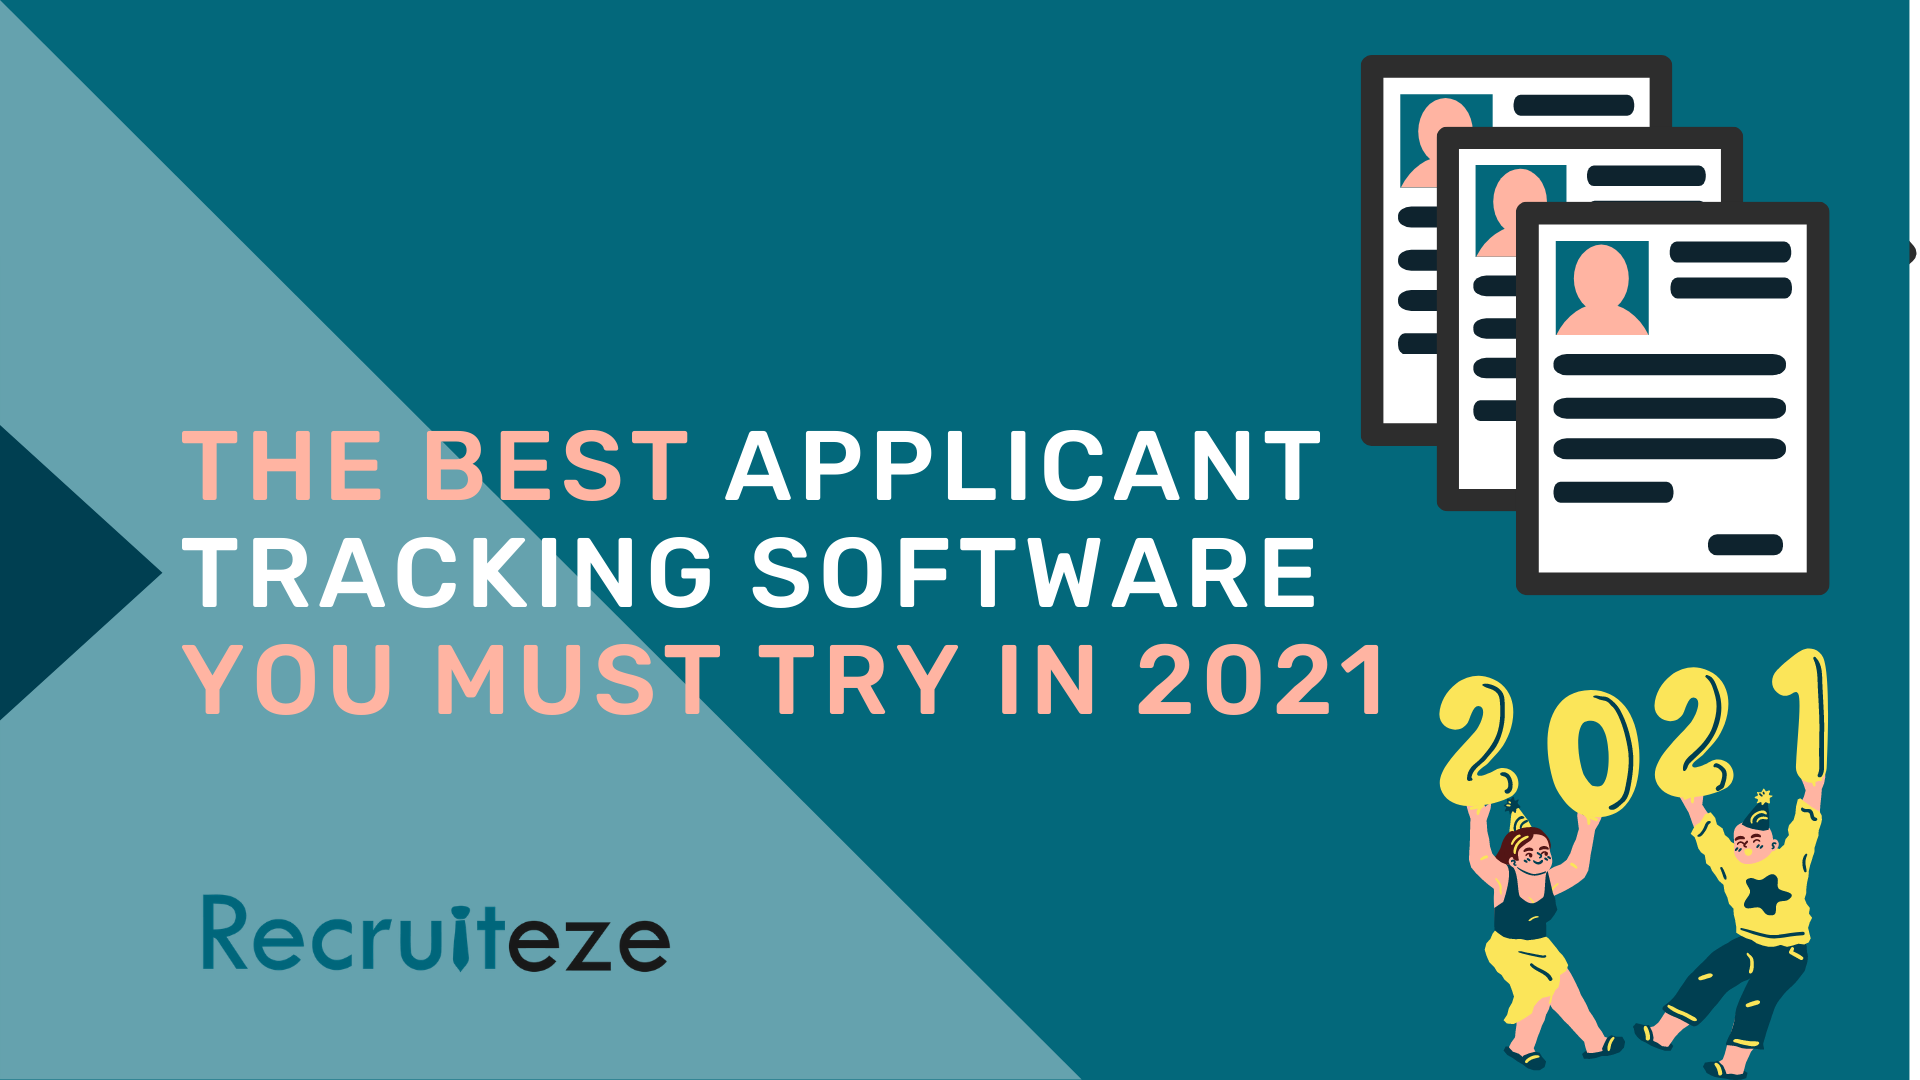 Recruiteze: The Best Applicant Tracking Software You MUST Try in 2021